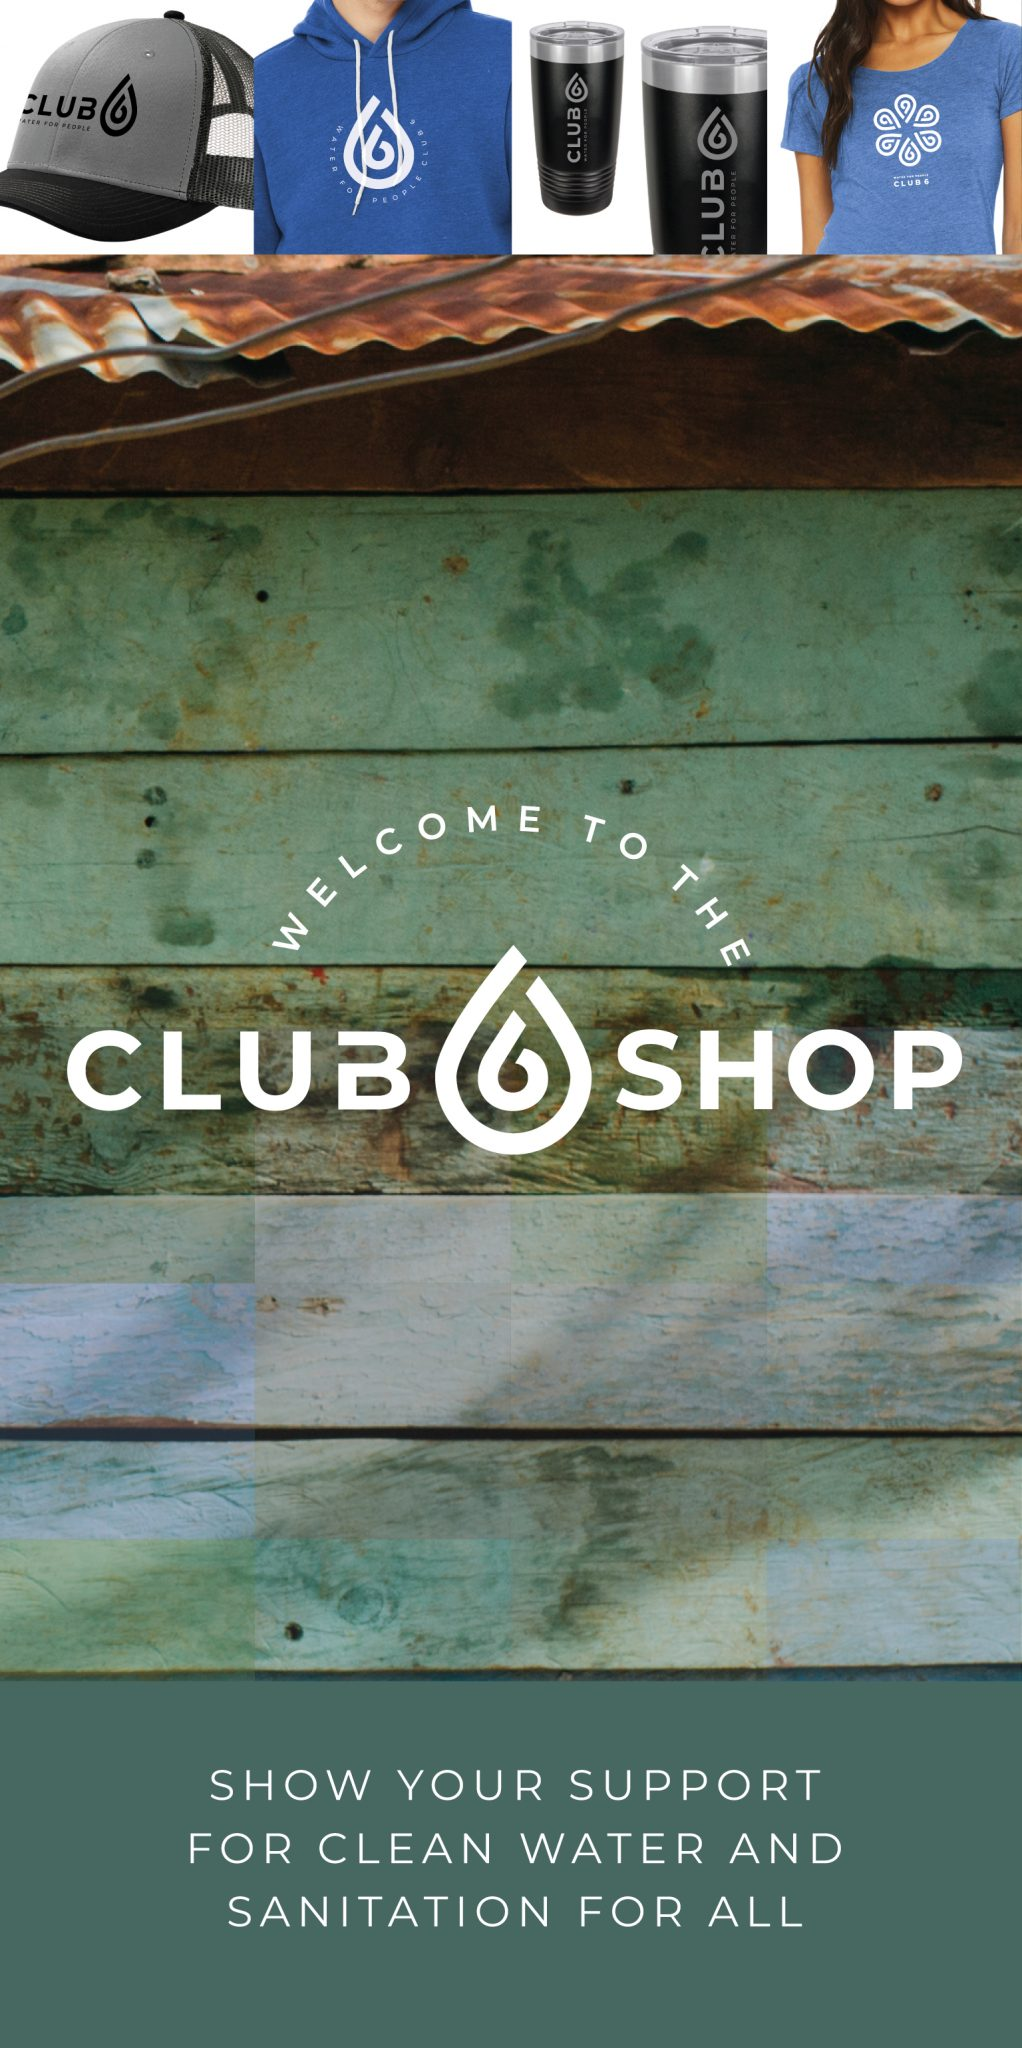 Welcome to the club 6 Shop. Show your support for clean water and sanitation for all.